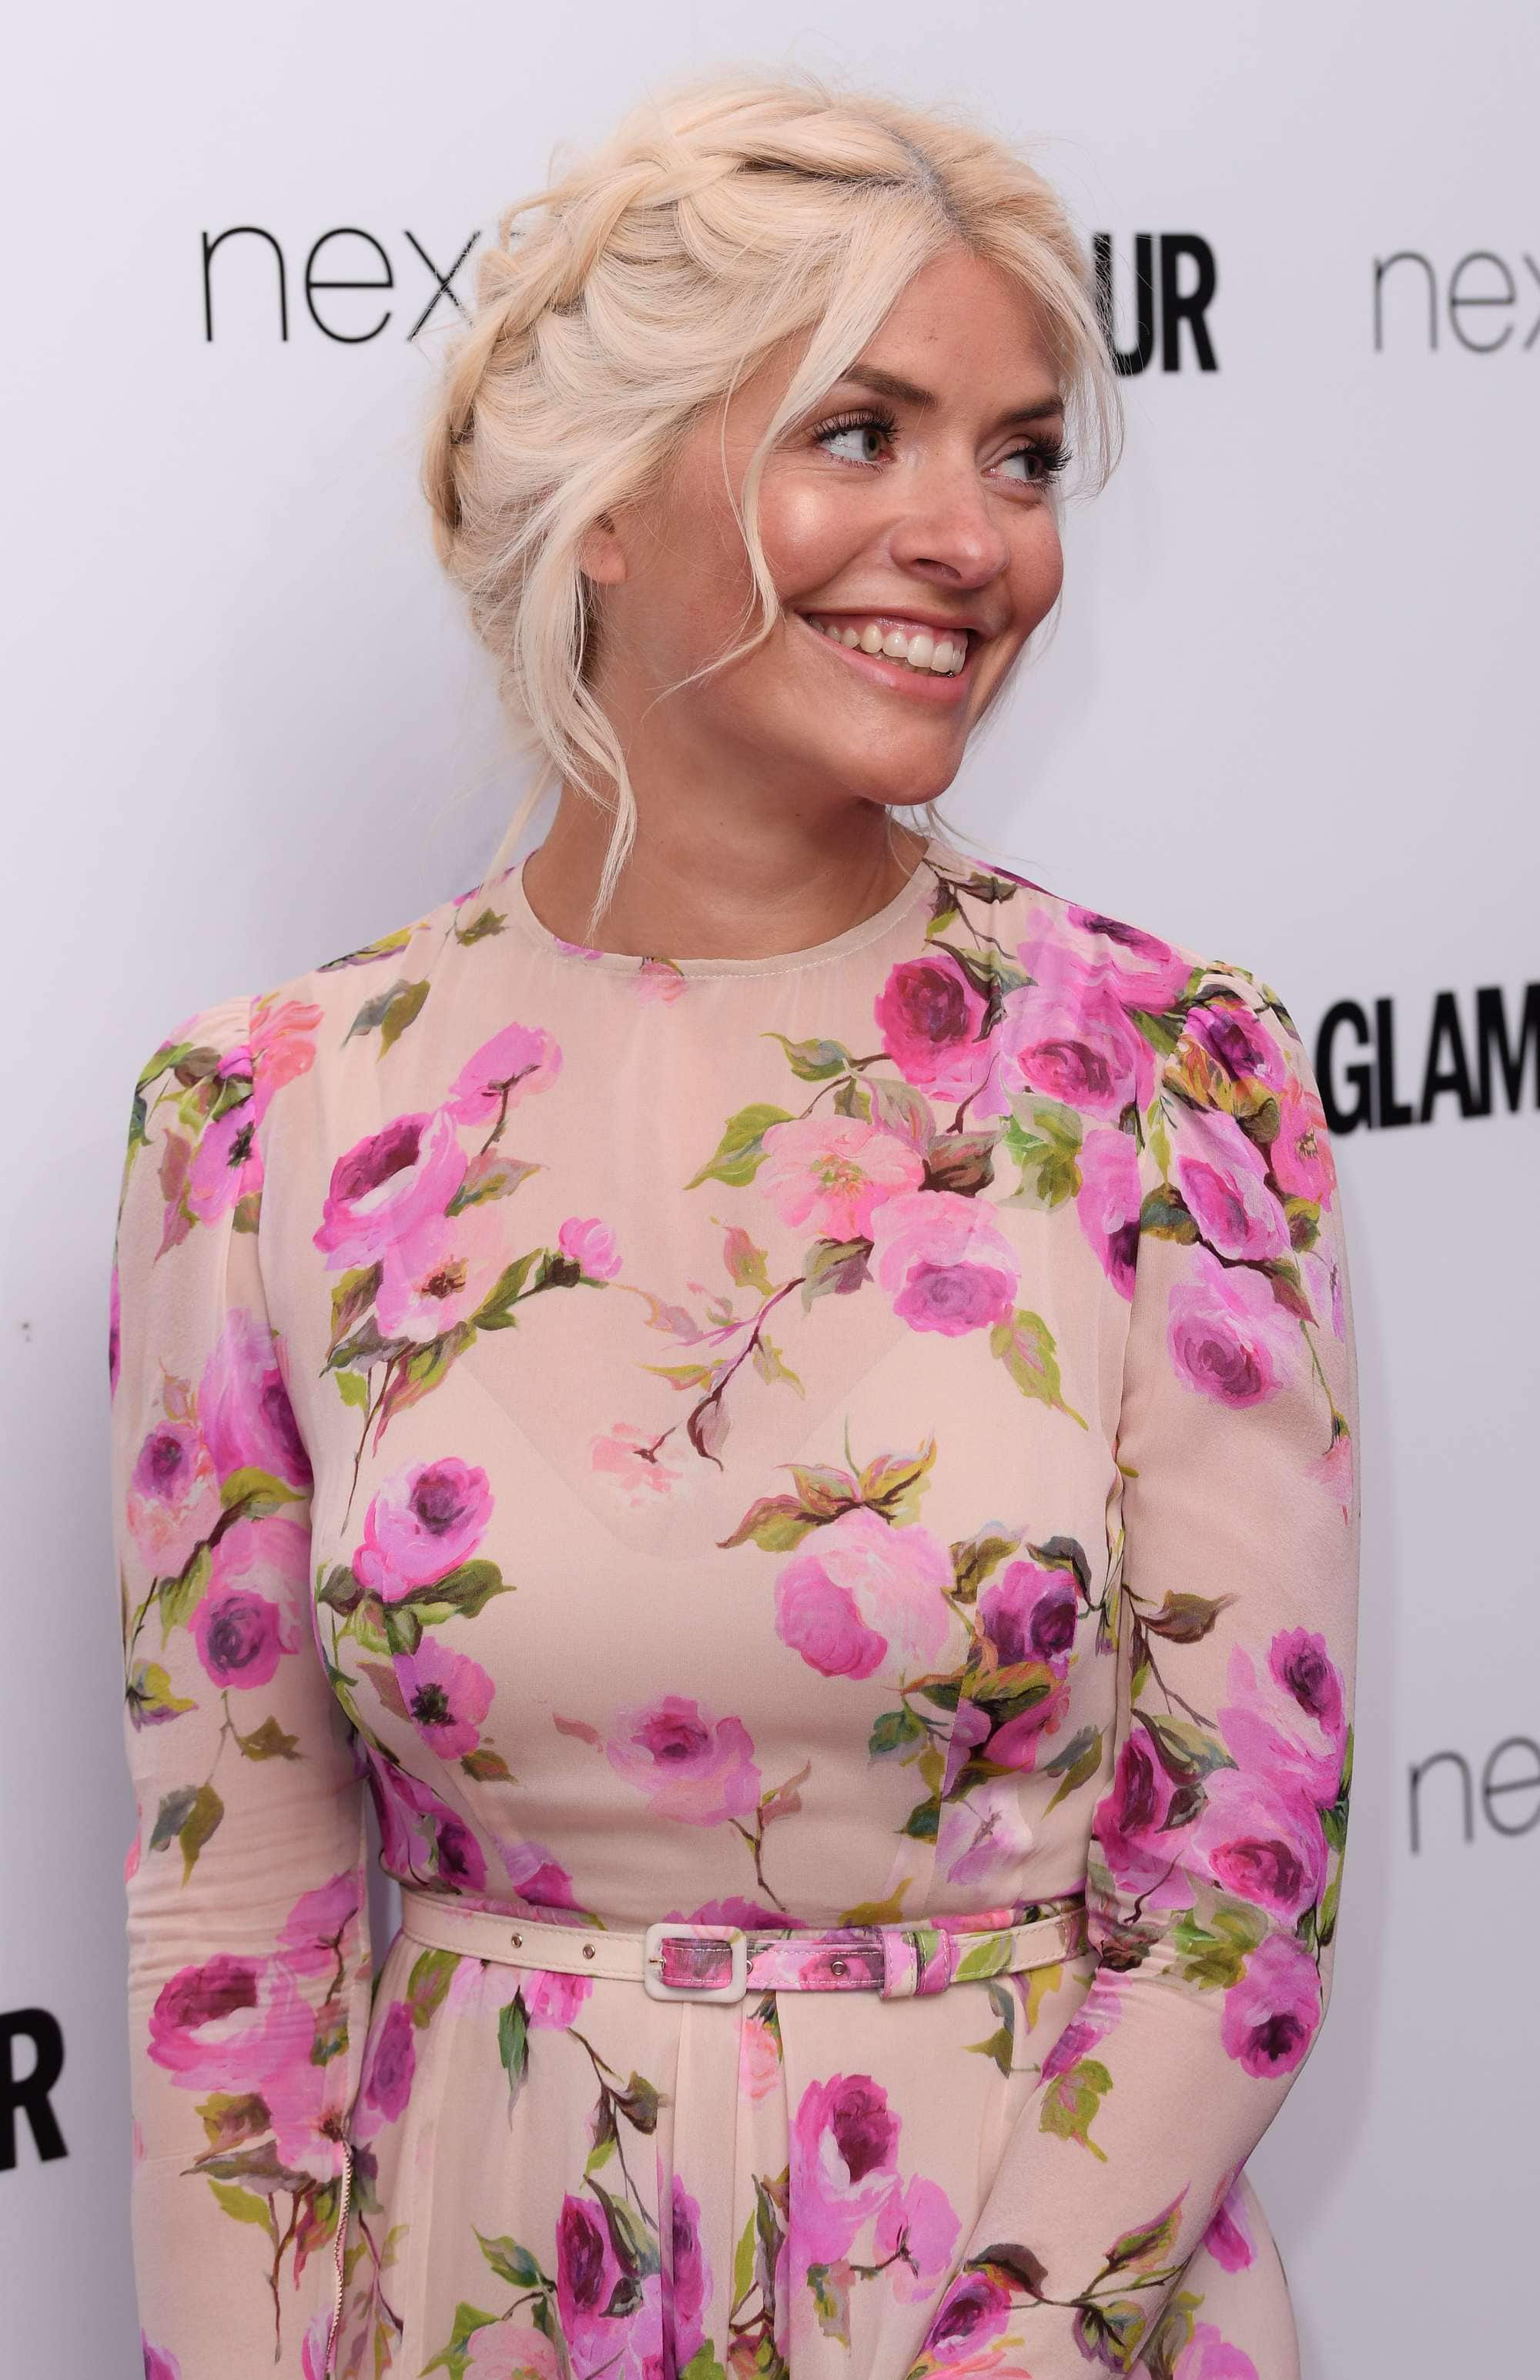 Red carpet hairstyles: Holly Willoughby with light blonde styled into a milkmaid braid